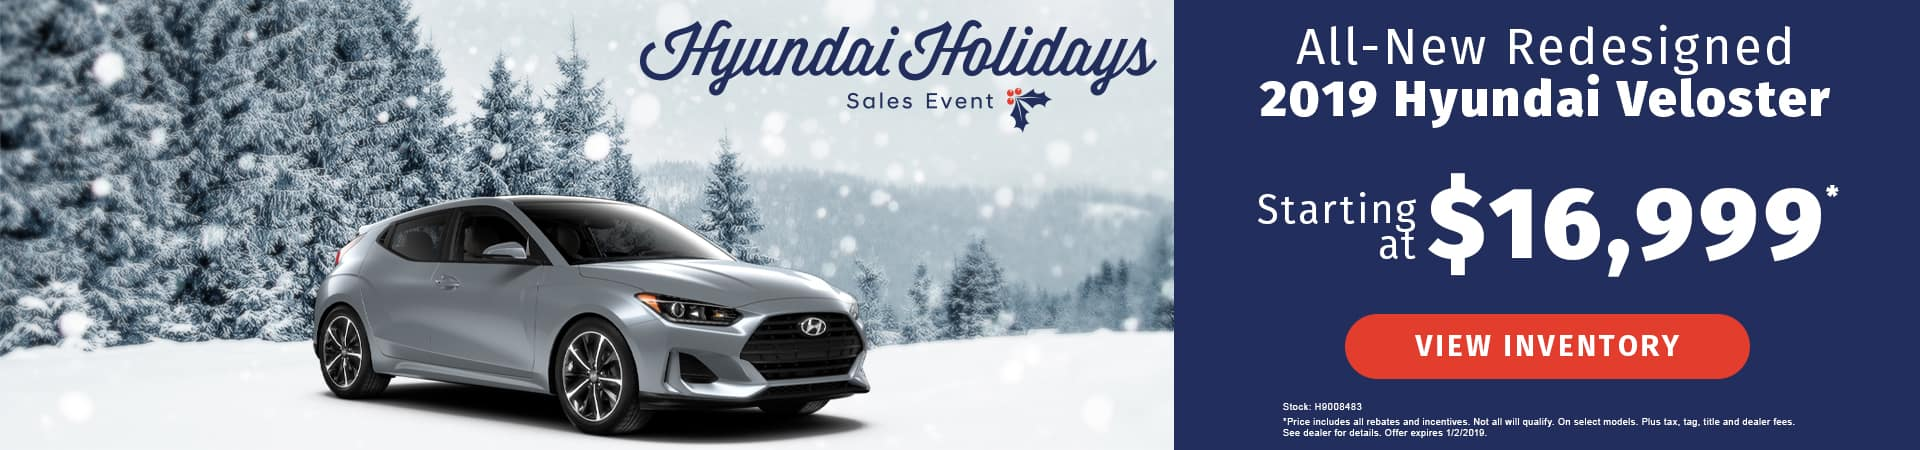 Drive an all-new 2019 Hyundai Veloster starting at just $16,999 in Murfreesboro TN